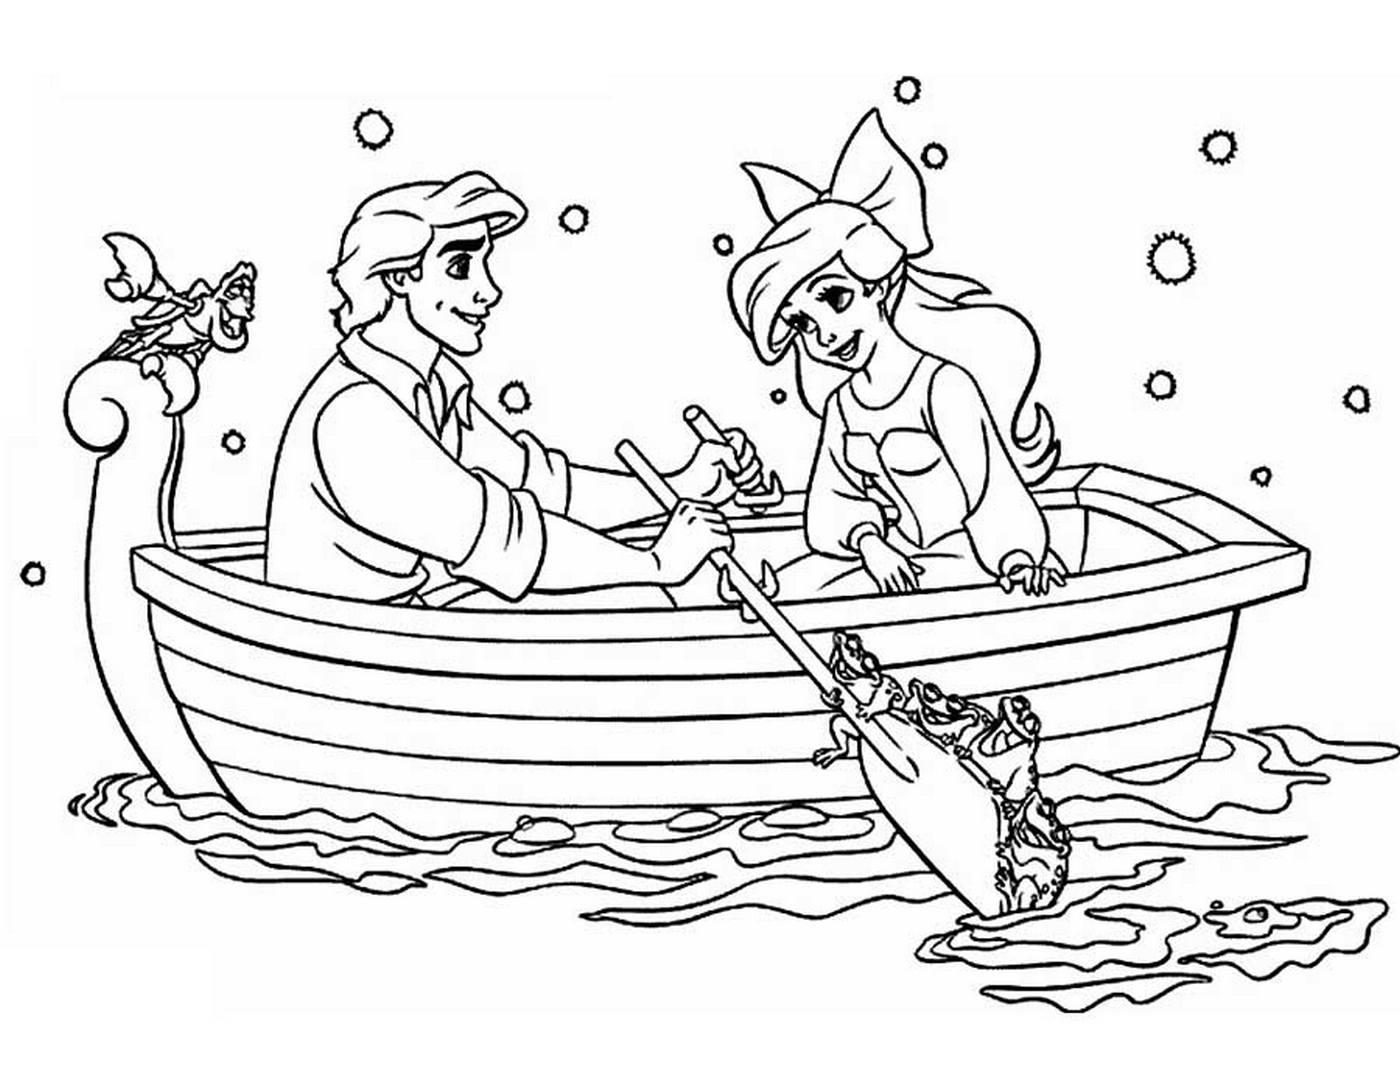 Coloring Pages Little Mermaid Ariel. Print for girls, beautiful images